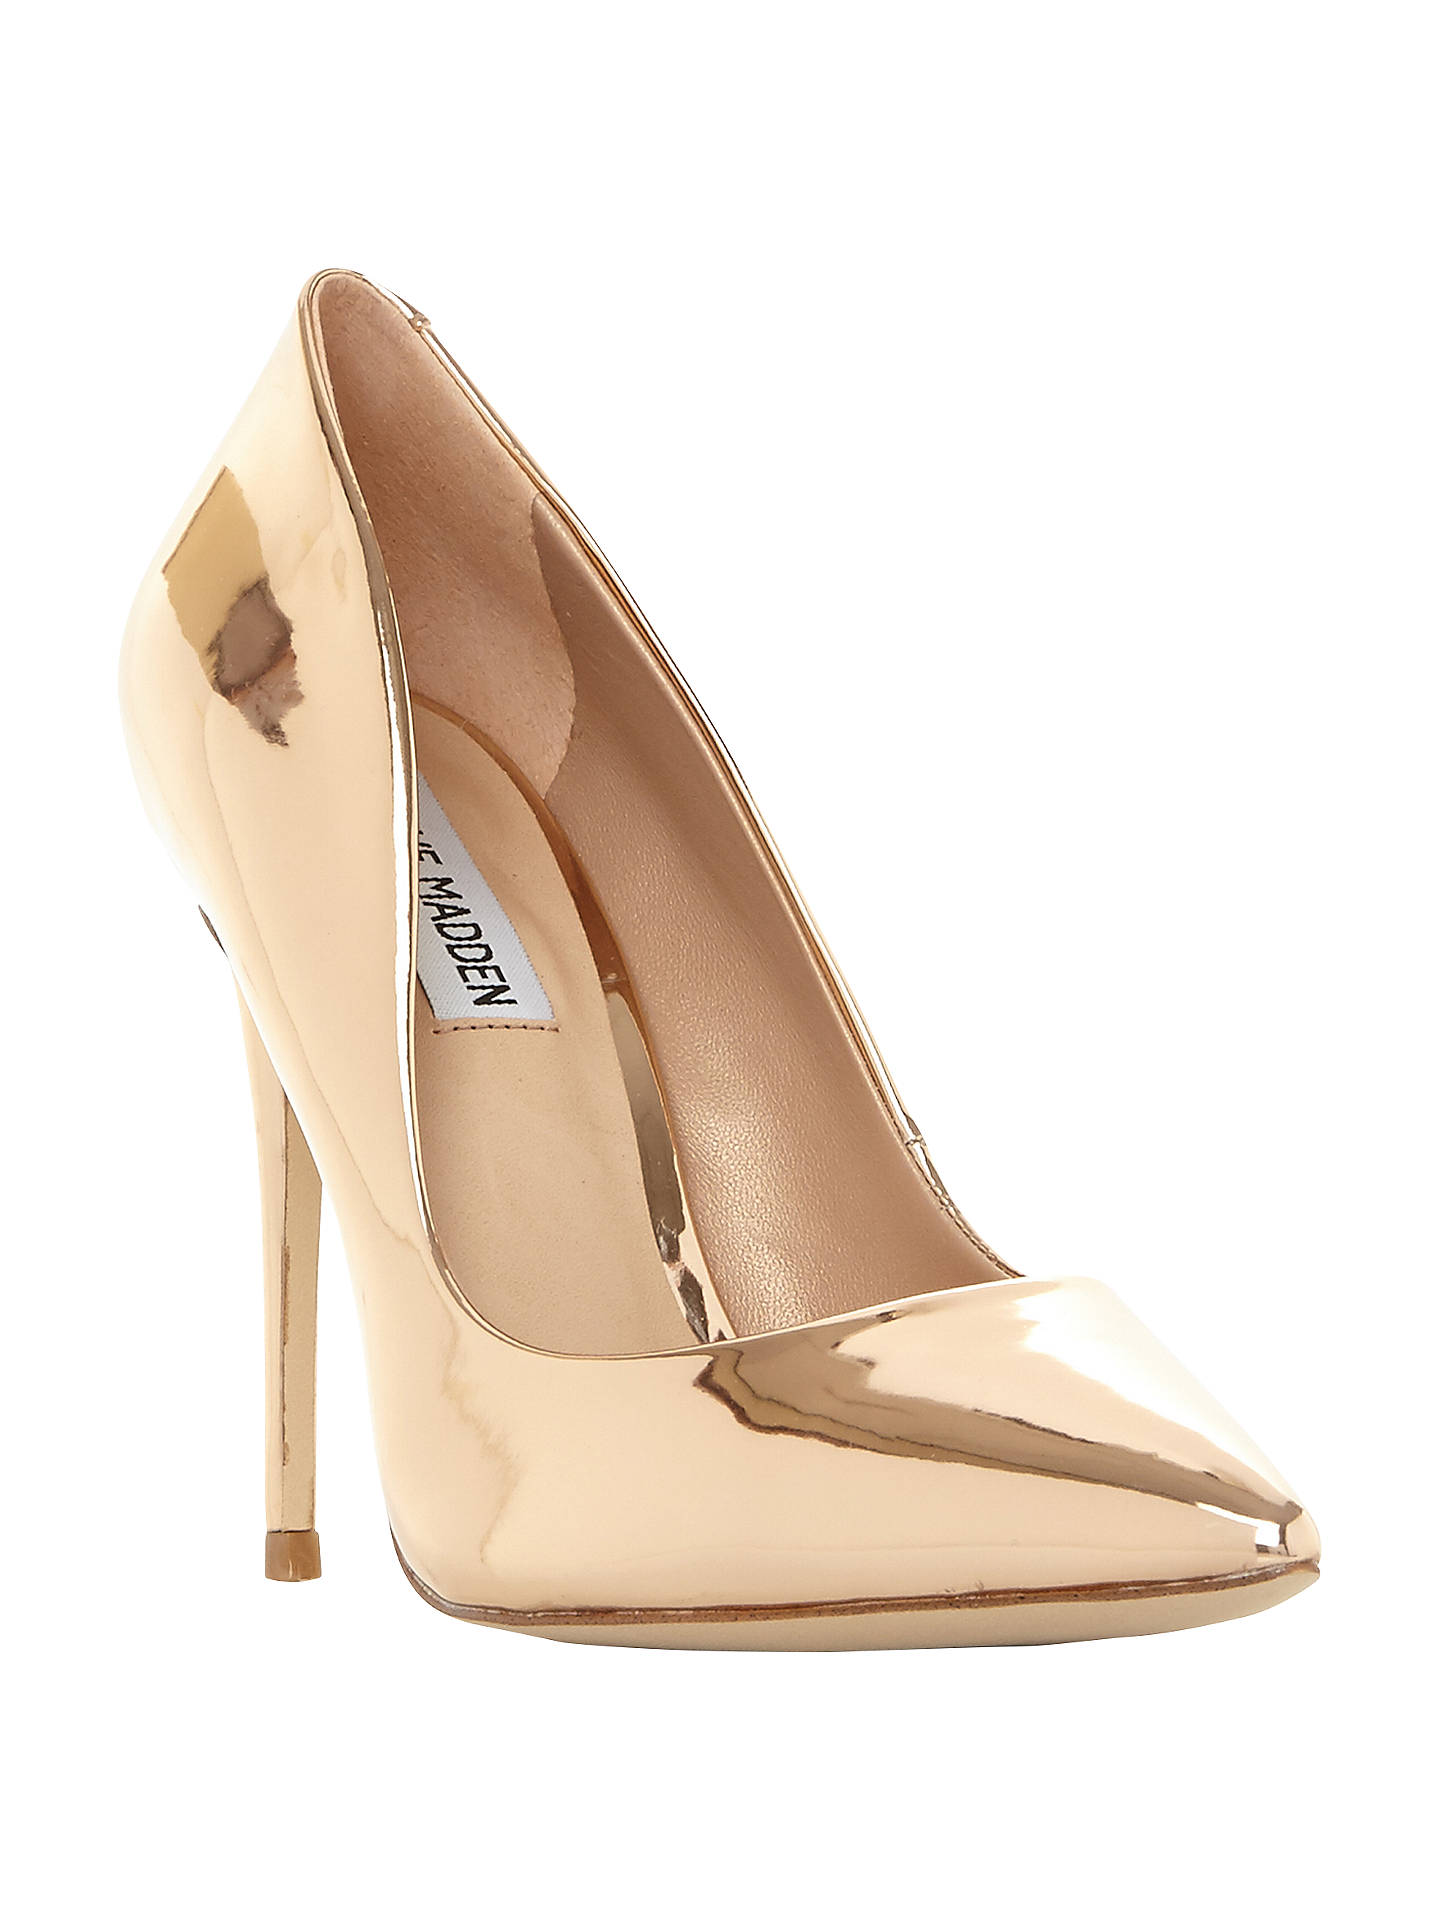 6c7766beae34 Steve Madden Daisie Stiletto Heeled Court Shoes at John Lewis   Partners